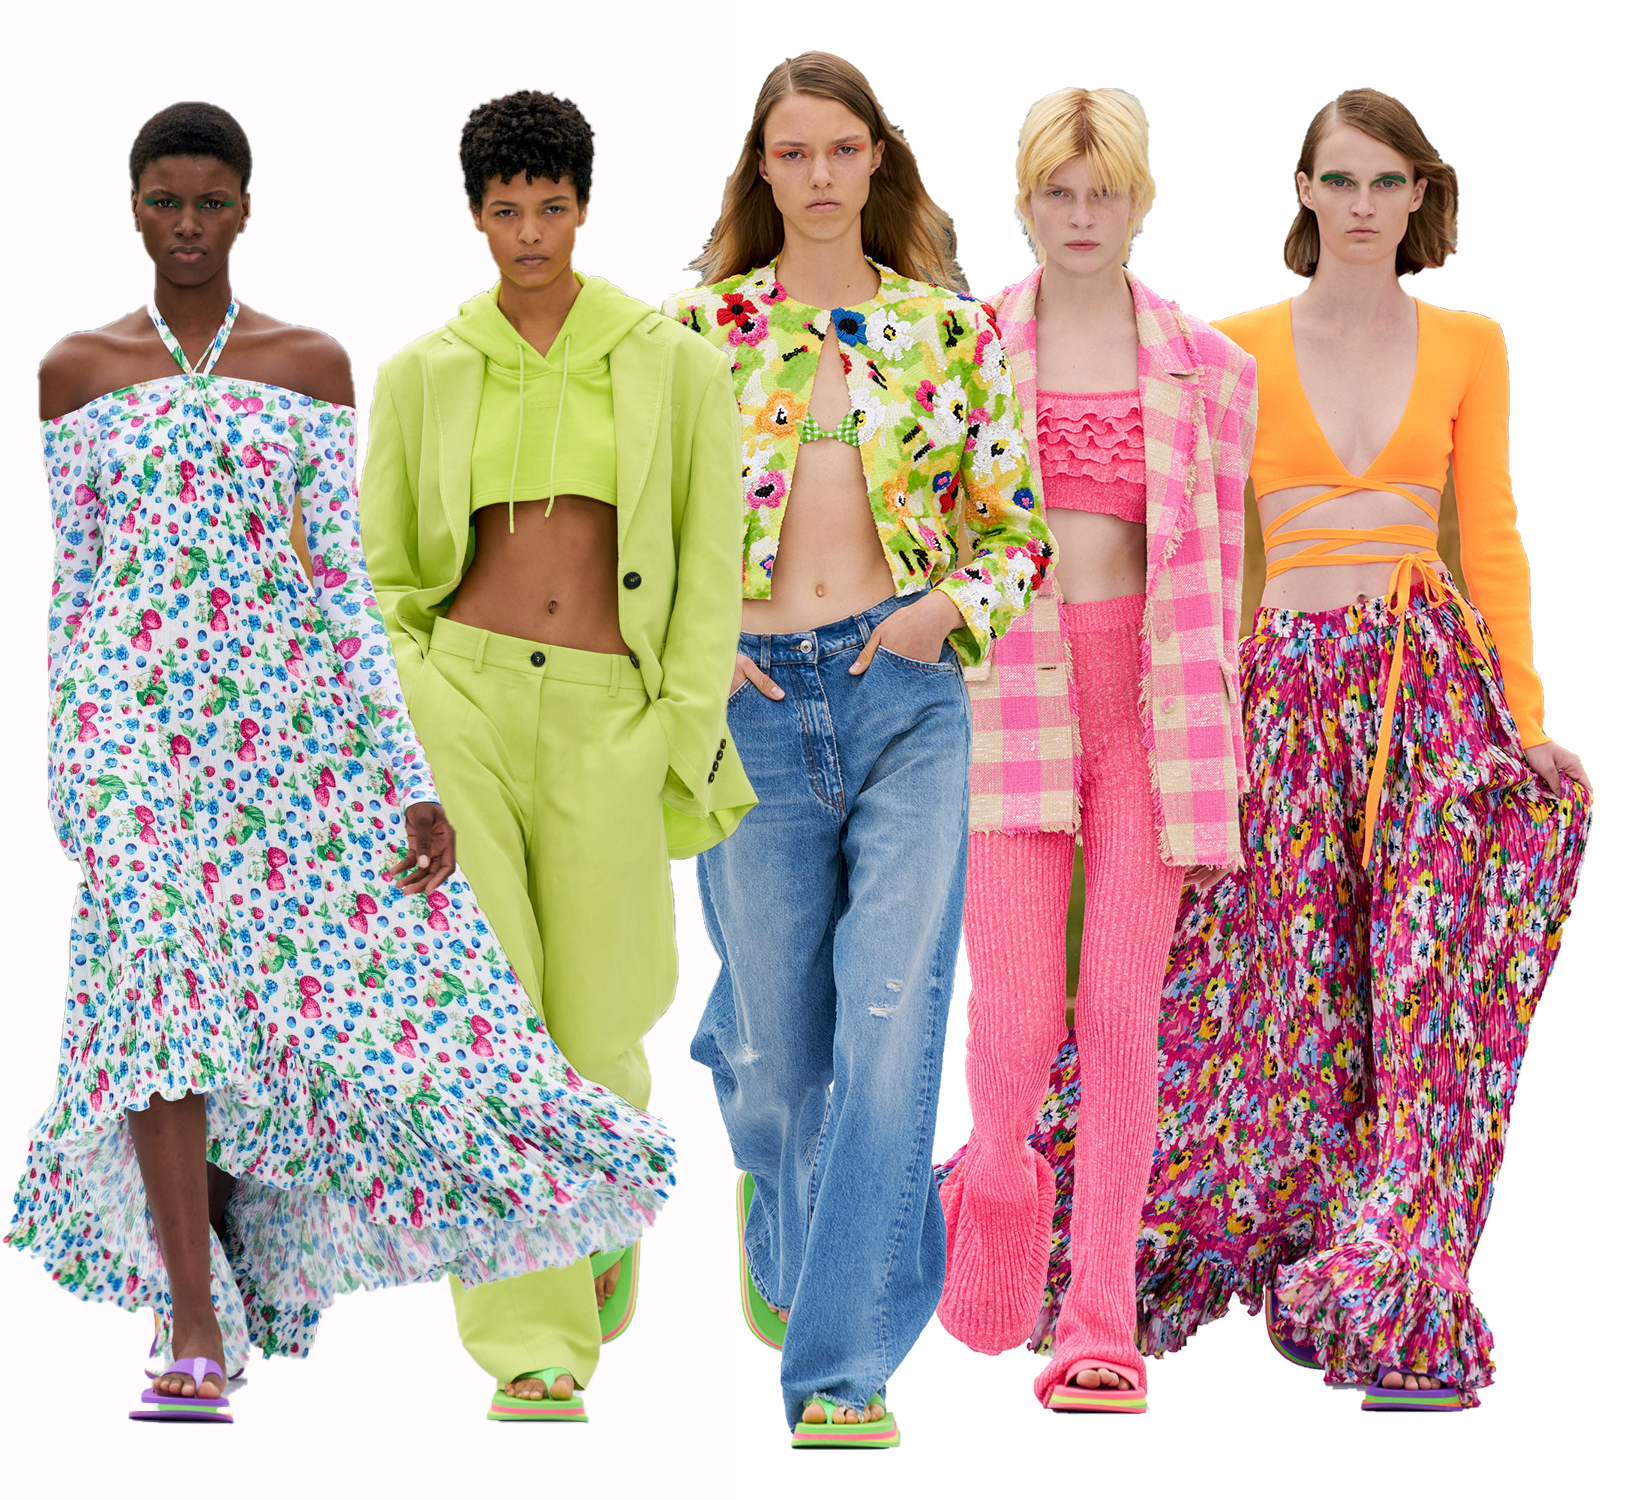 msgm-spring-2022-collection